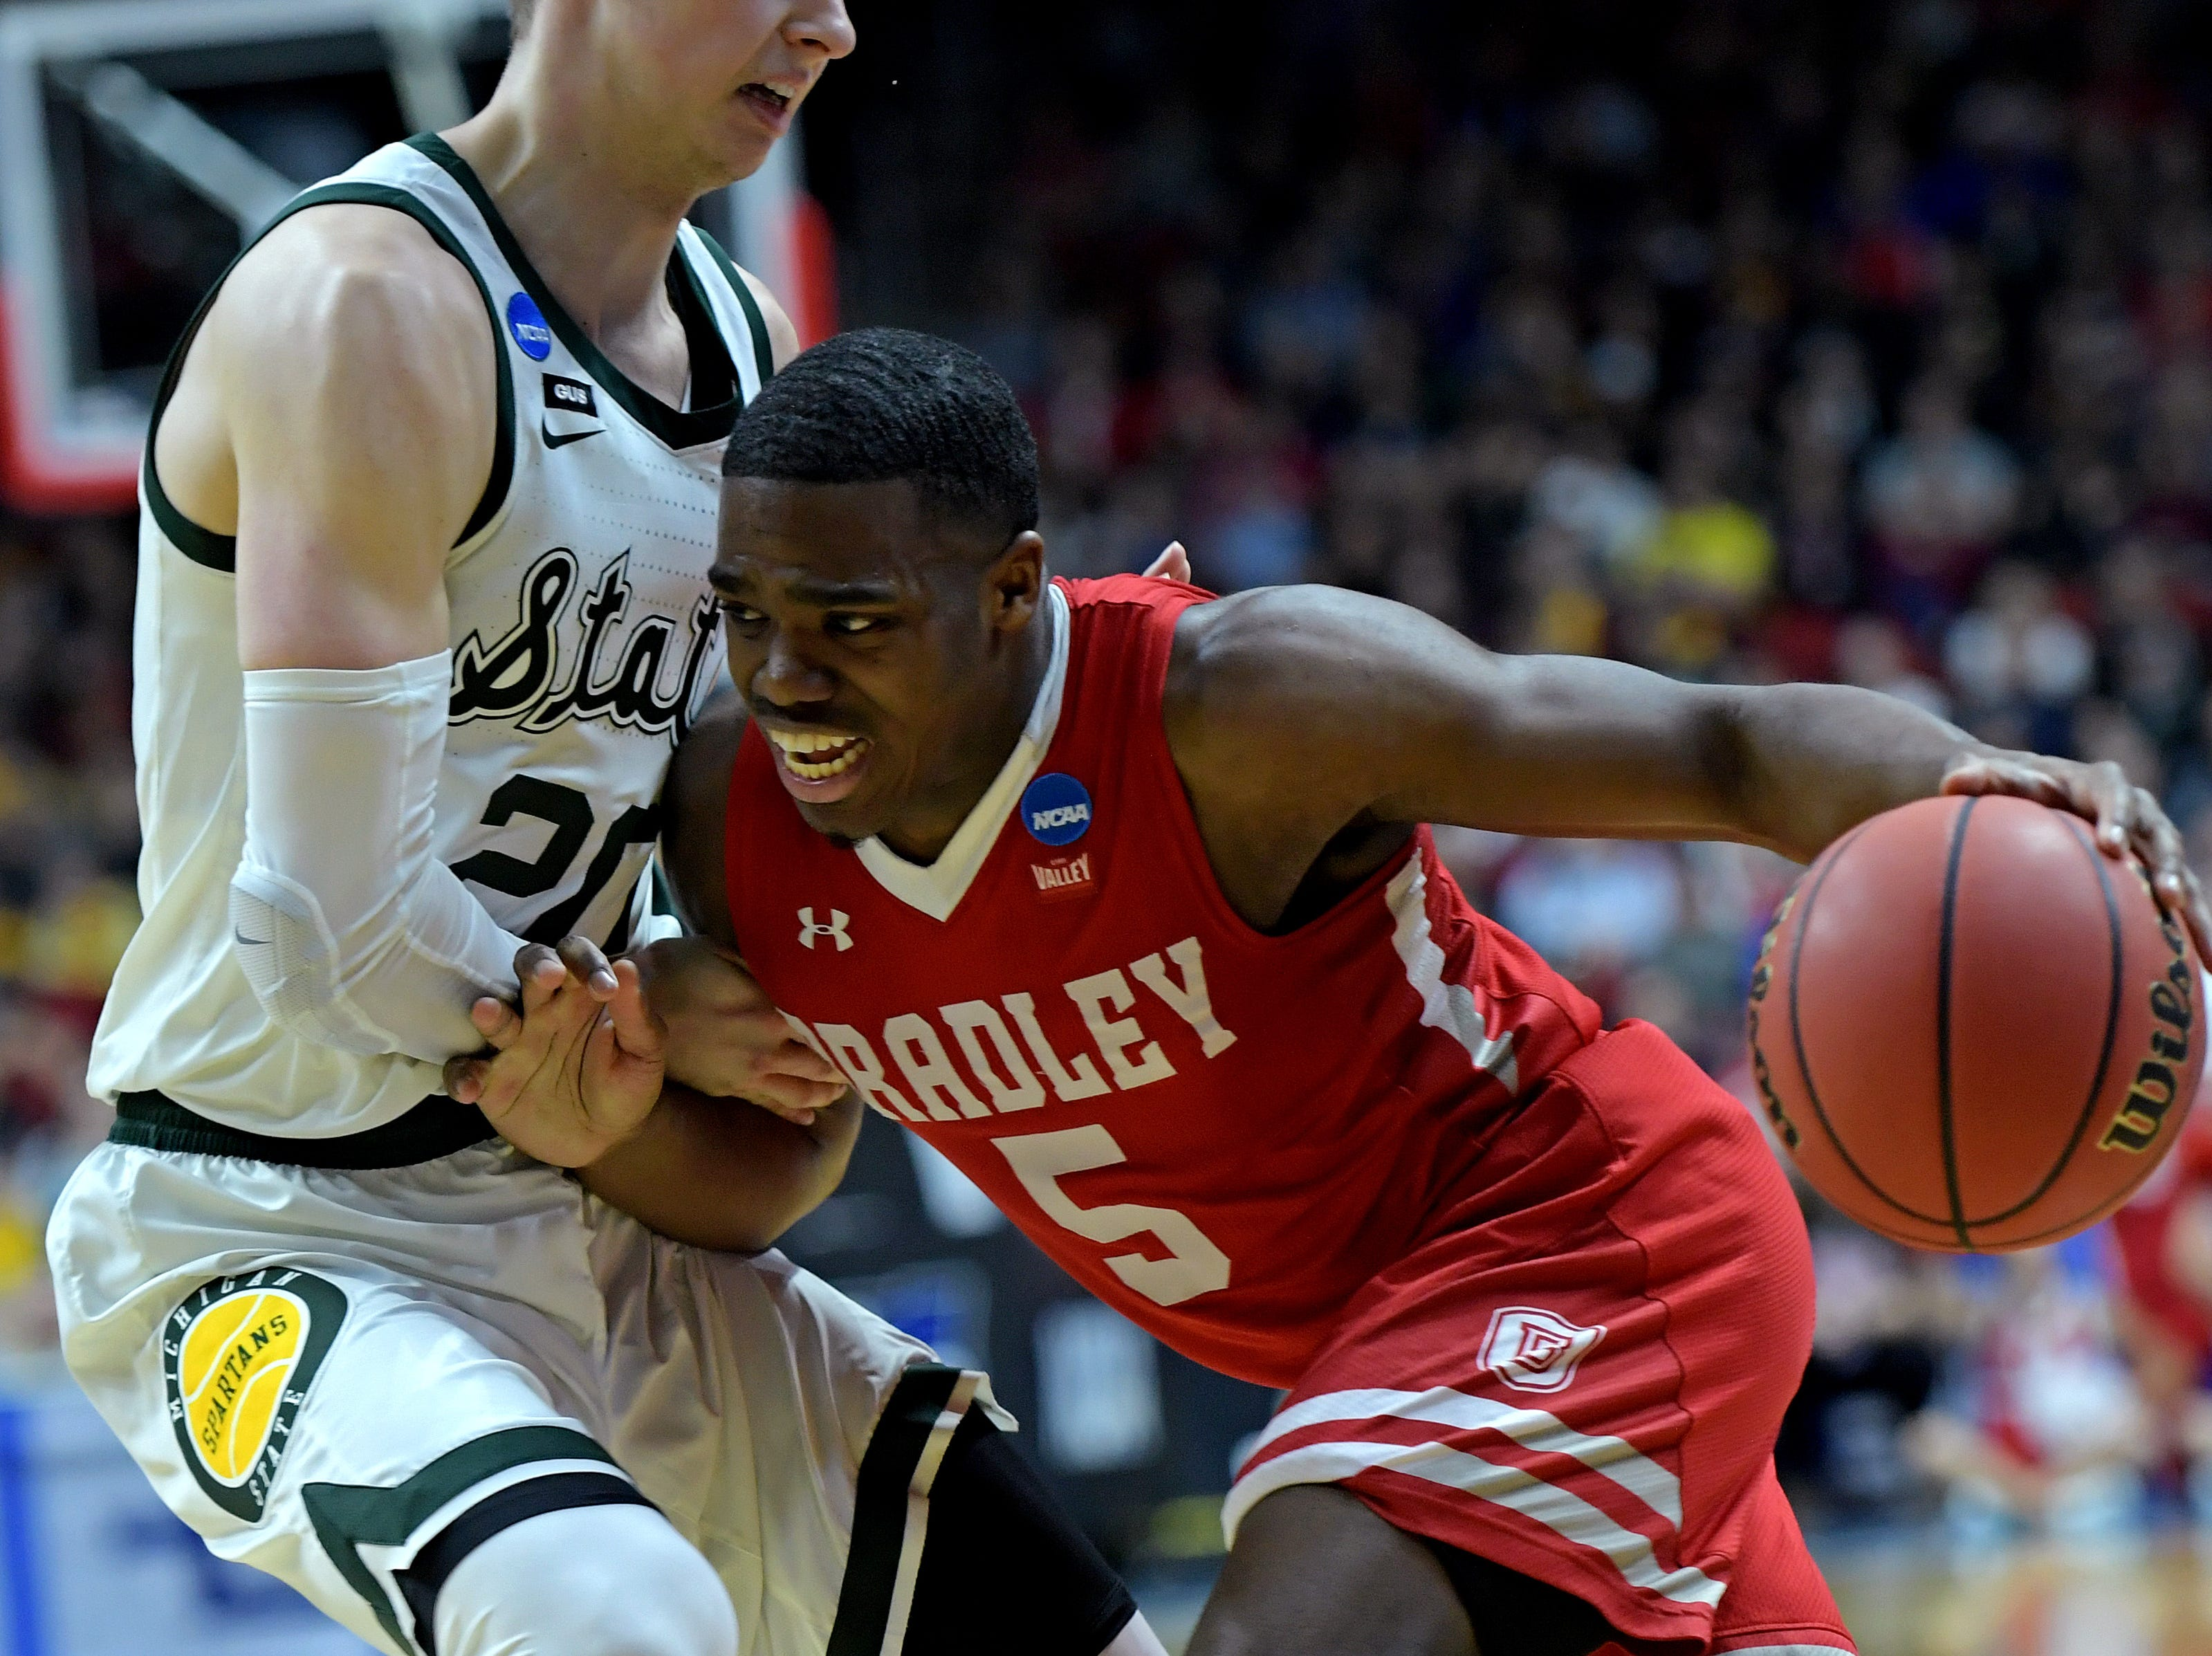 Mar 21, 2019; Des Moines, IA, United States; Bradley Braves guard Darrell Brown (5) drives to the basket against Michigan State Spartans guard Matt McQuaid (20) during the first half in the first round of the 2019 NCAA Tournament at Wells Fargo Arena. Mandatory Credit: Steven Branscombe-USA TODAY Sports